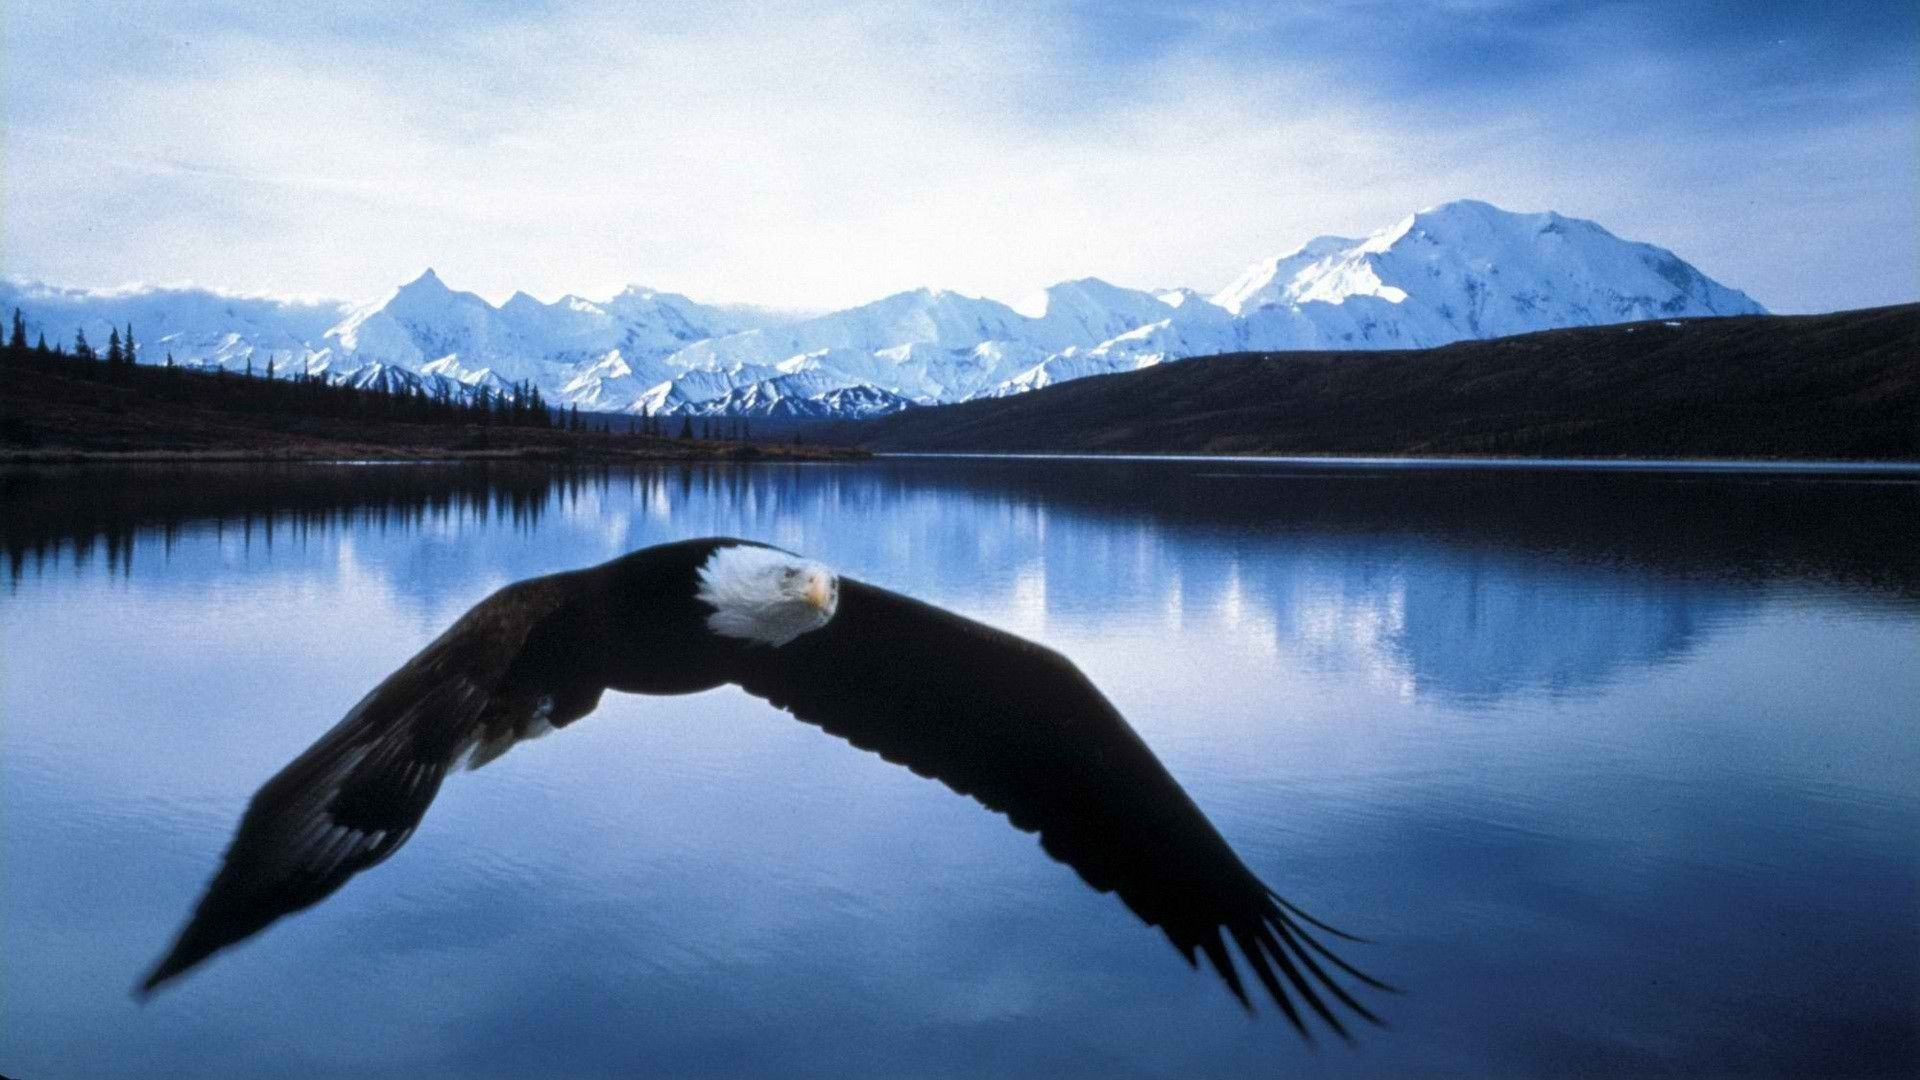 bald eagle images free